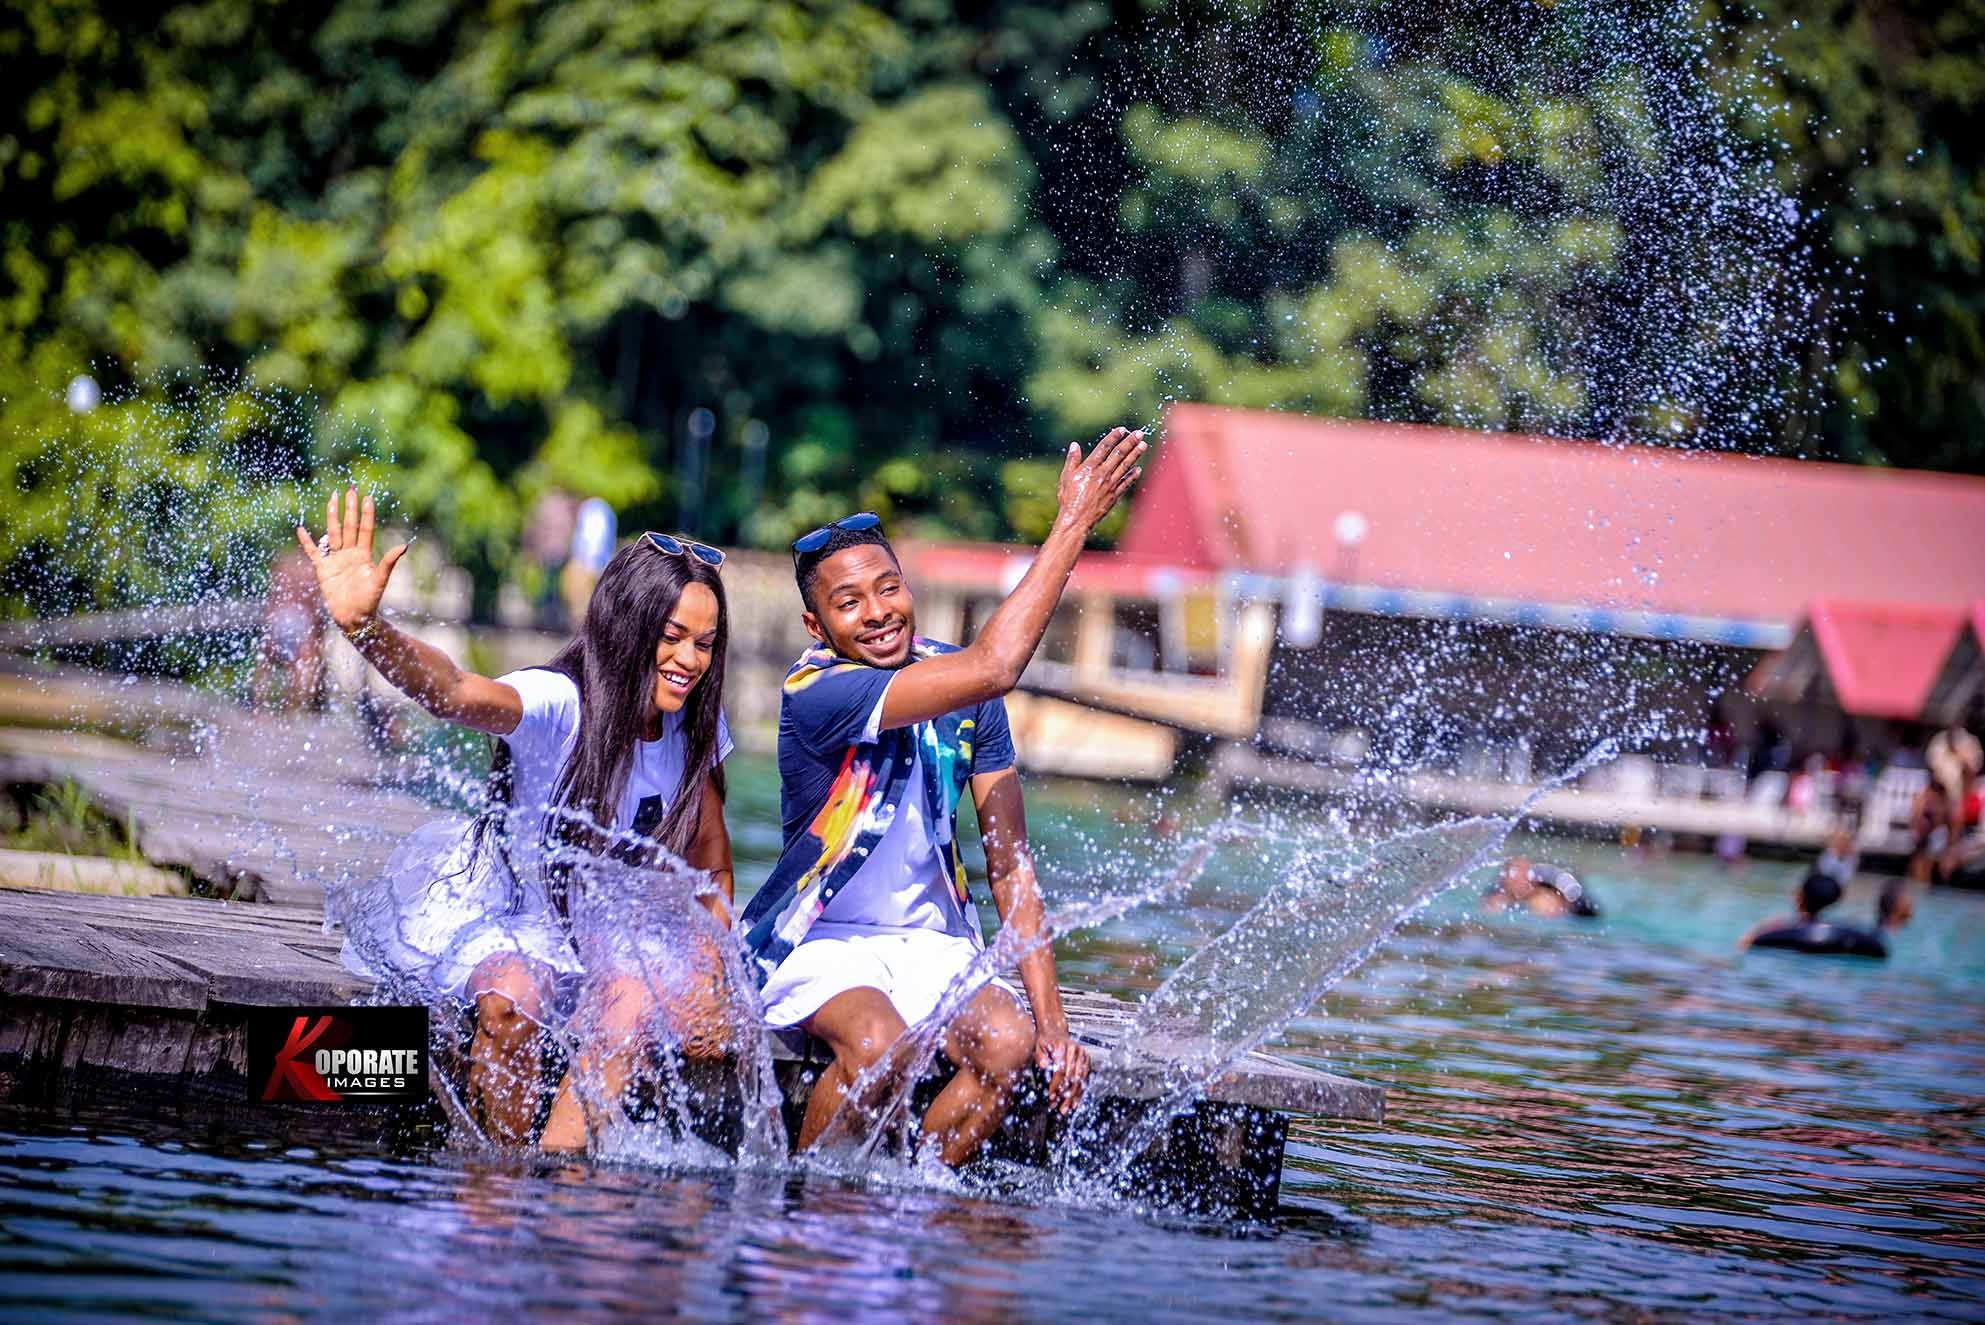 OYBZUCEE2016-PRE WEDDING photos & videos taken by Koporate Images, Benin City, Edo state, Nigeria. Koporate images is a Photography & Video Coverage studio located in Benin City. We provide Professional Photographers for your weddings, birthdays and any special events